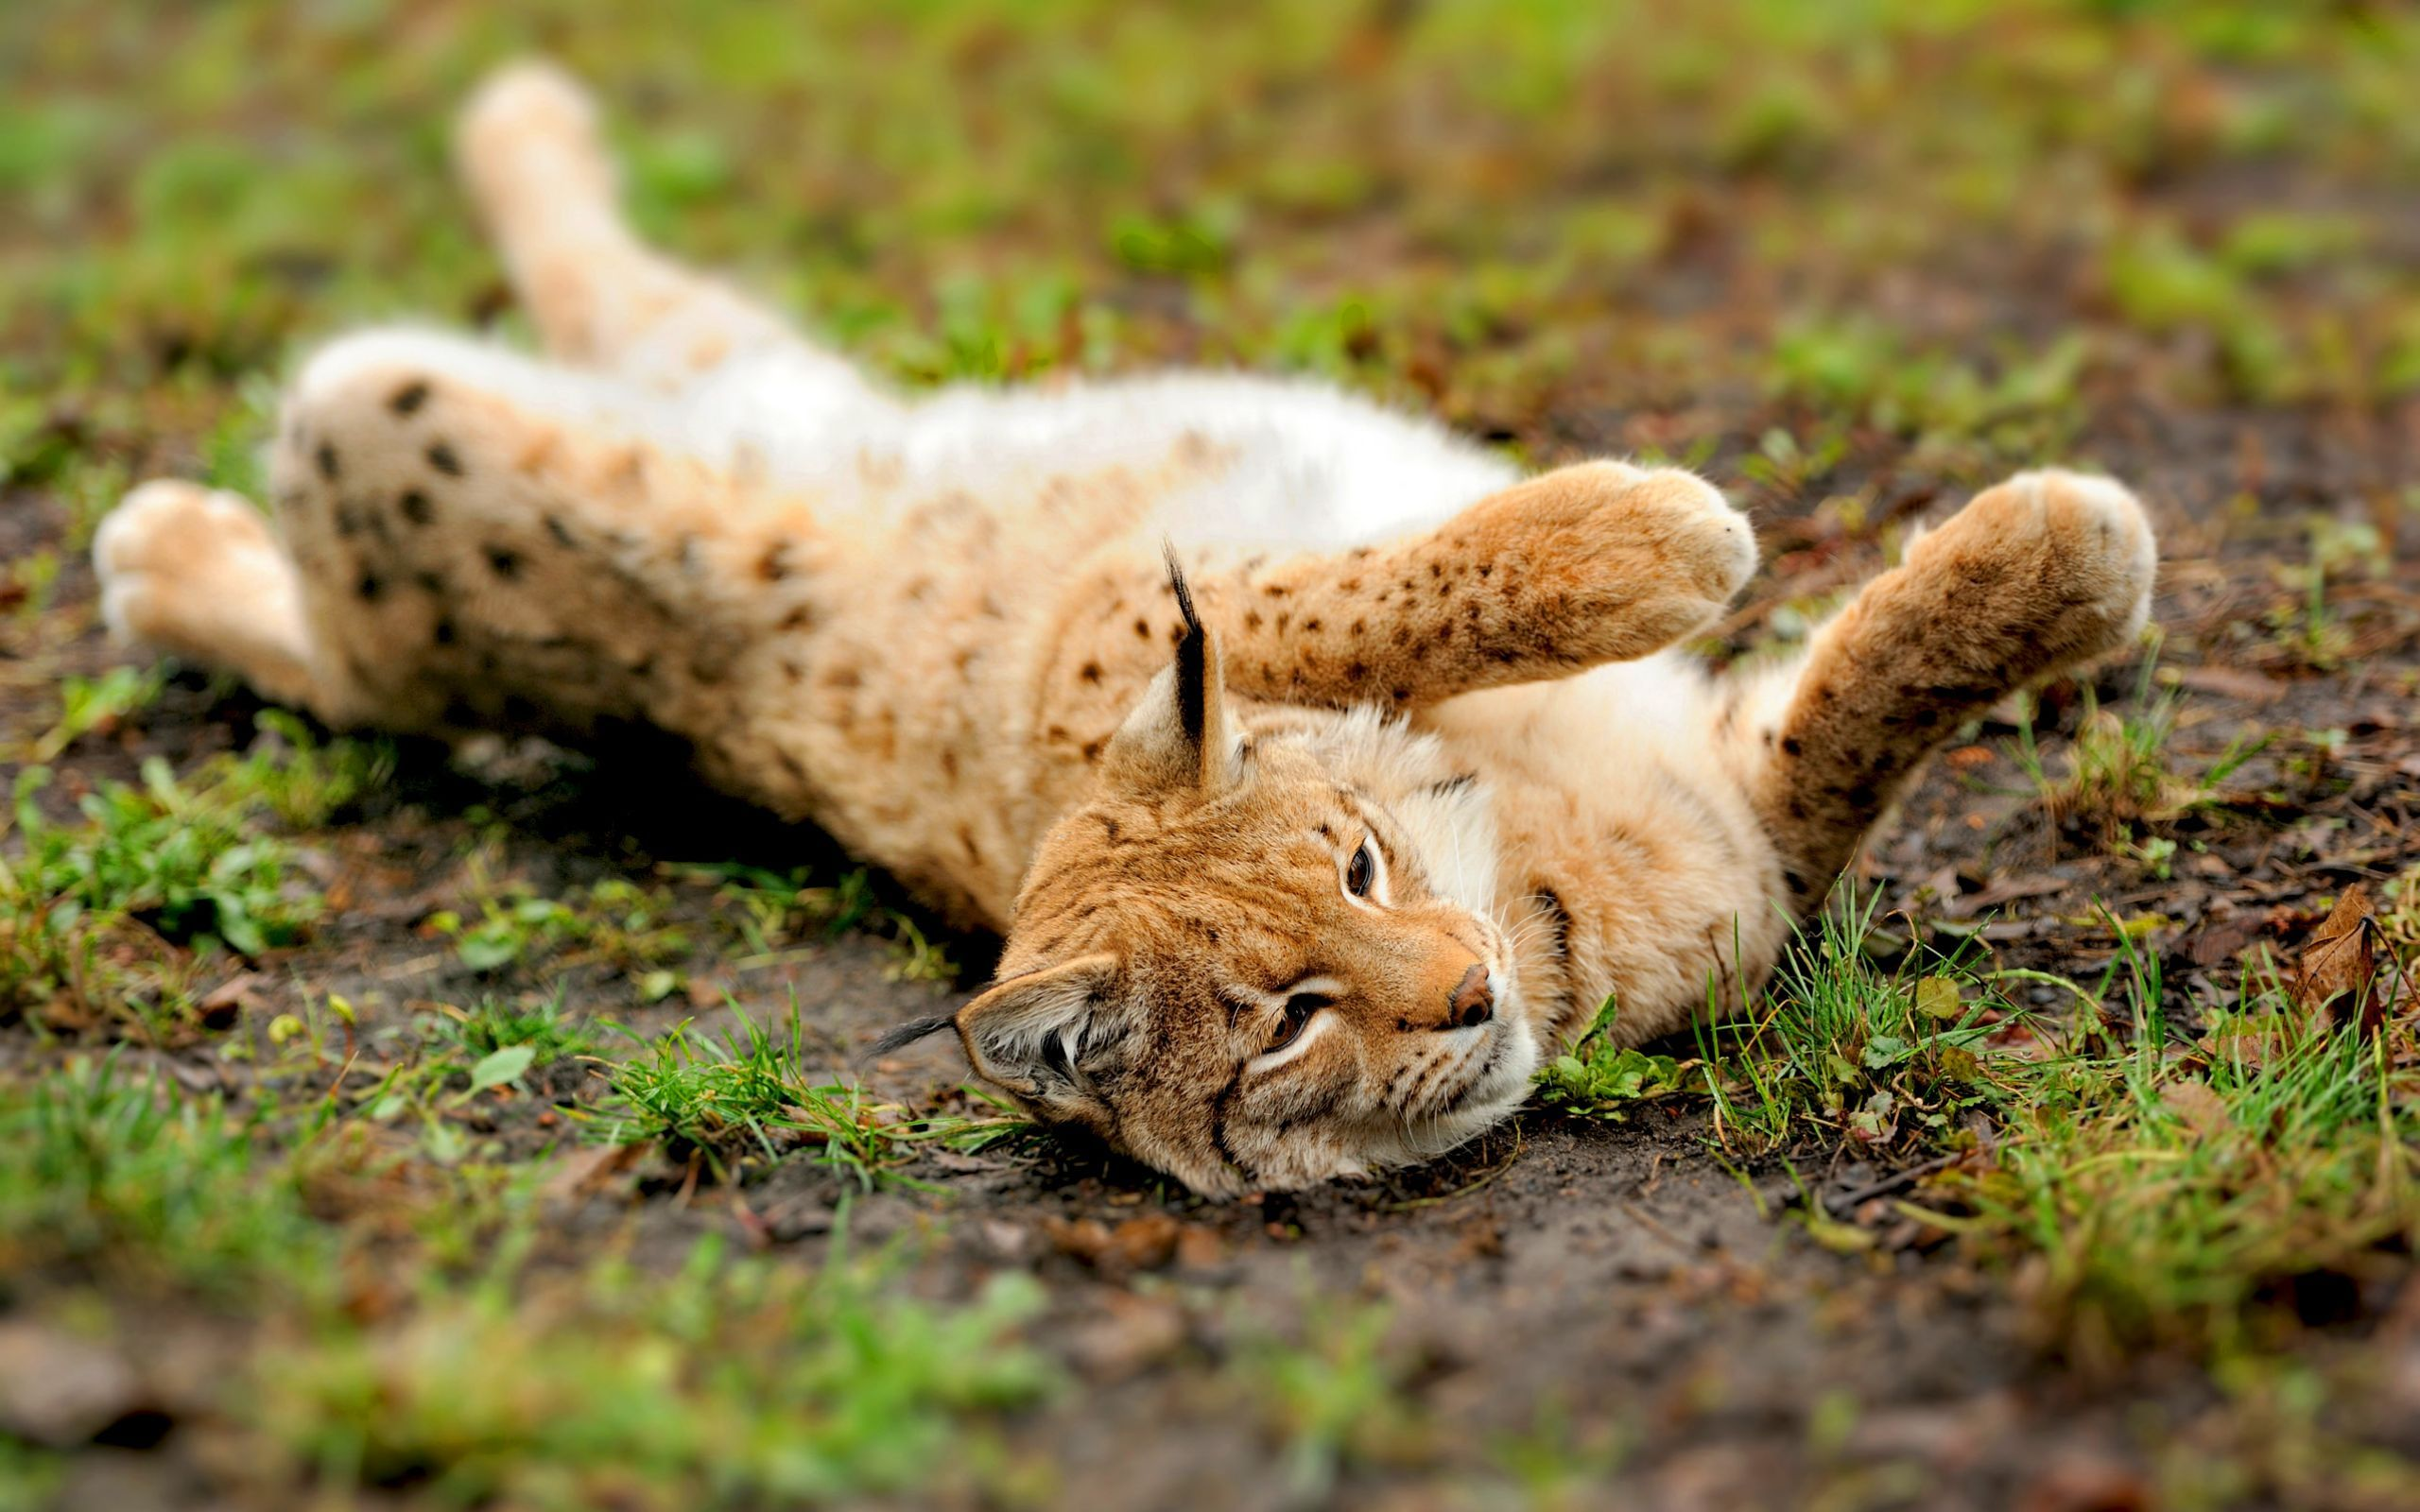 27128 download wallpaper Animals, Bobcats screensavers and pictures for free